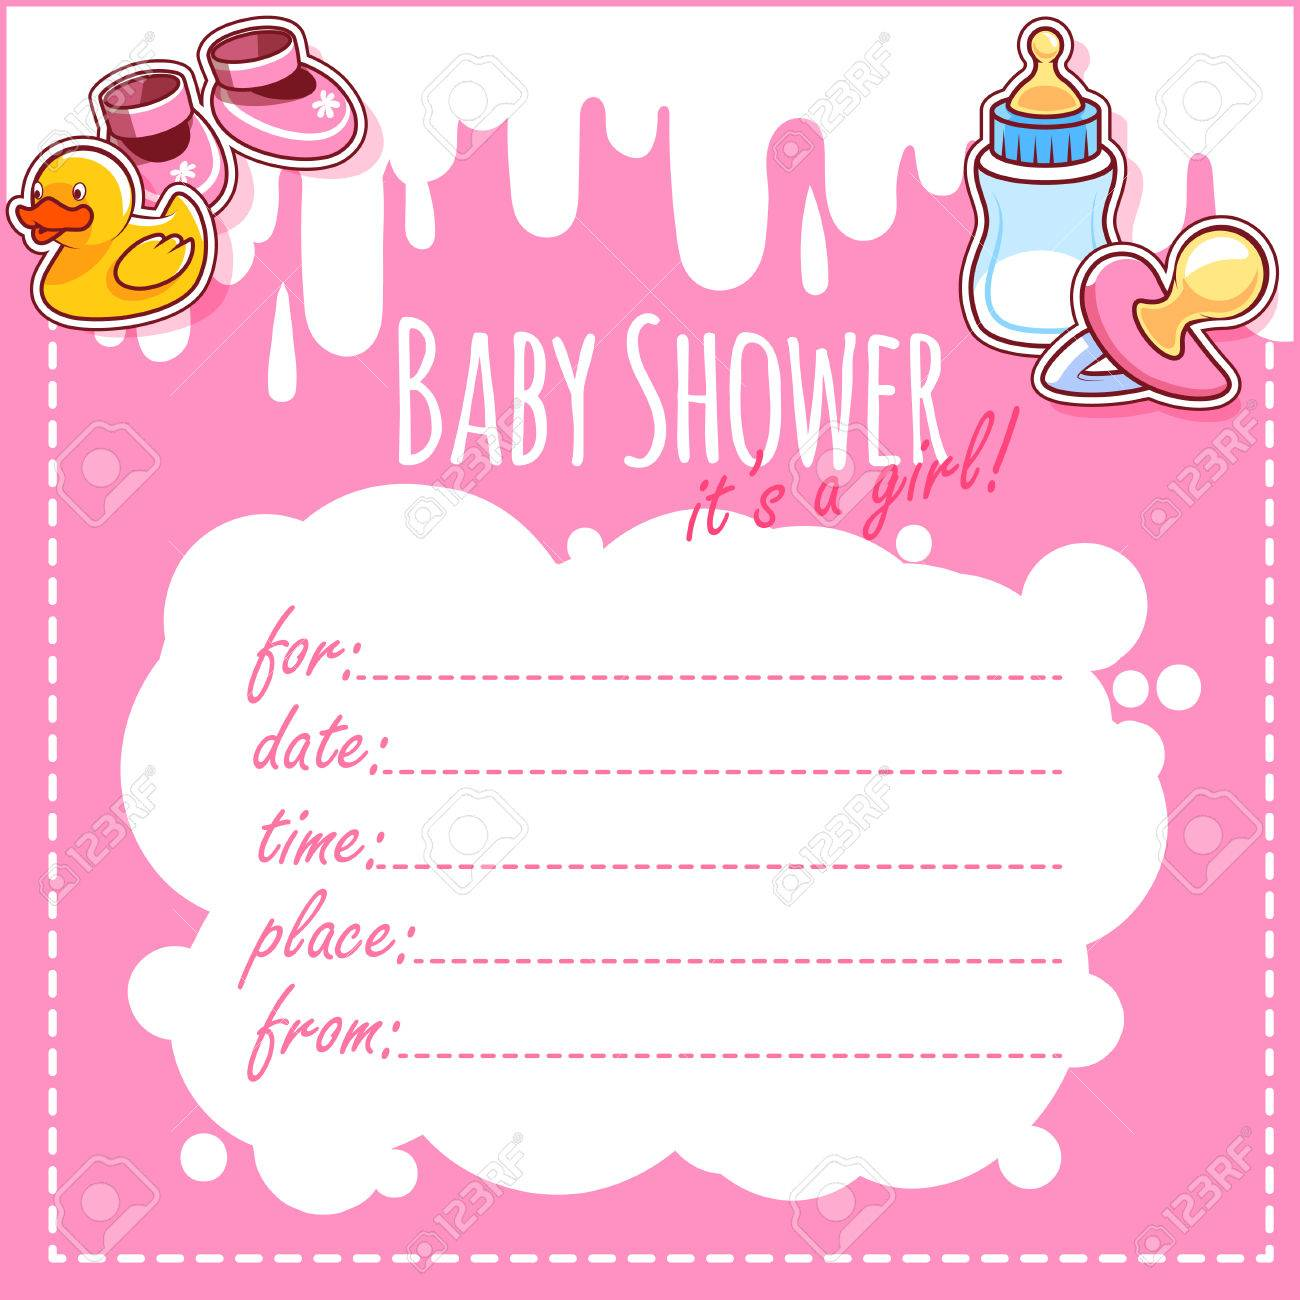 Baby shower card its a girl blank baby shower invitations baby shower card its a girl blank baby shower invitations for girl in pink filmwisefo